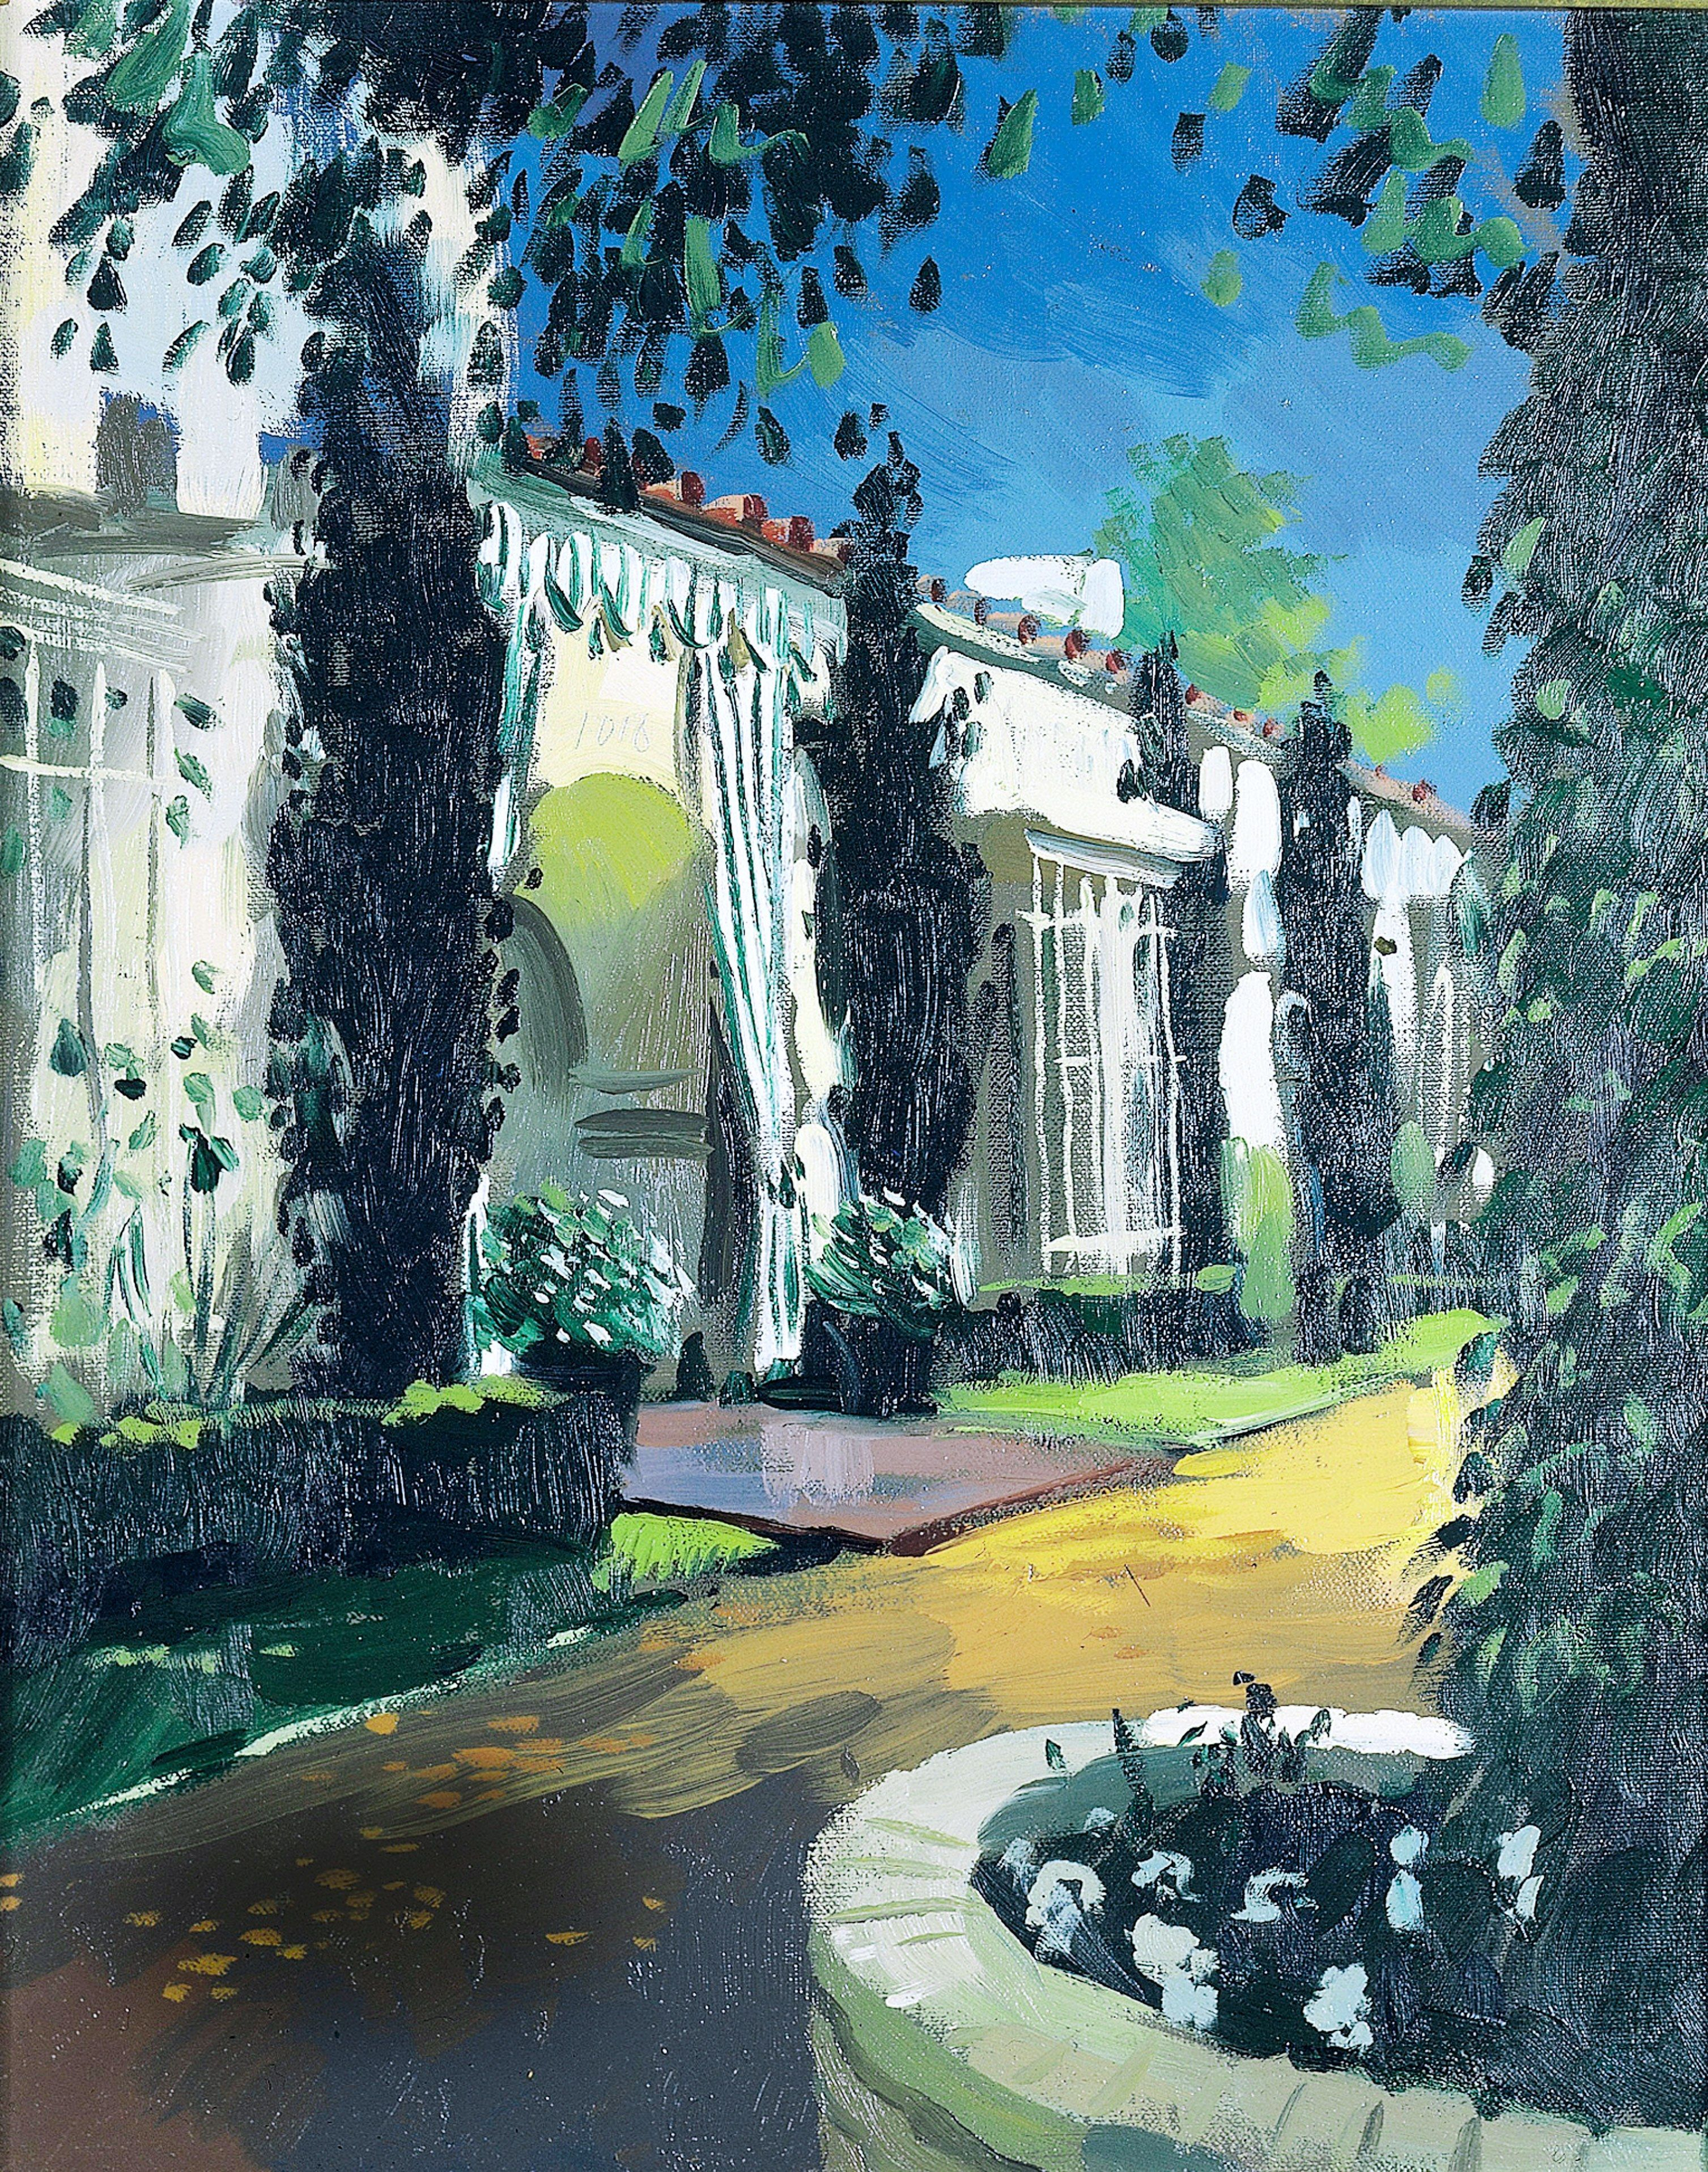 Decorator Elsie de Wolfe Took L.A. by Storm in the 1940s Photos | Architectural Digest. A painting by Julian La Trobe of After All, the Beverly Hills, California, house where decorator Elsie de Wolfe and her husband, Sir Charles Mendl, settled in the 1940s. The couple became Hollywood's preeminent hosts.